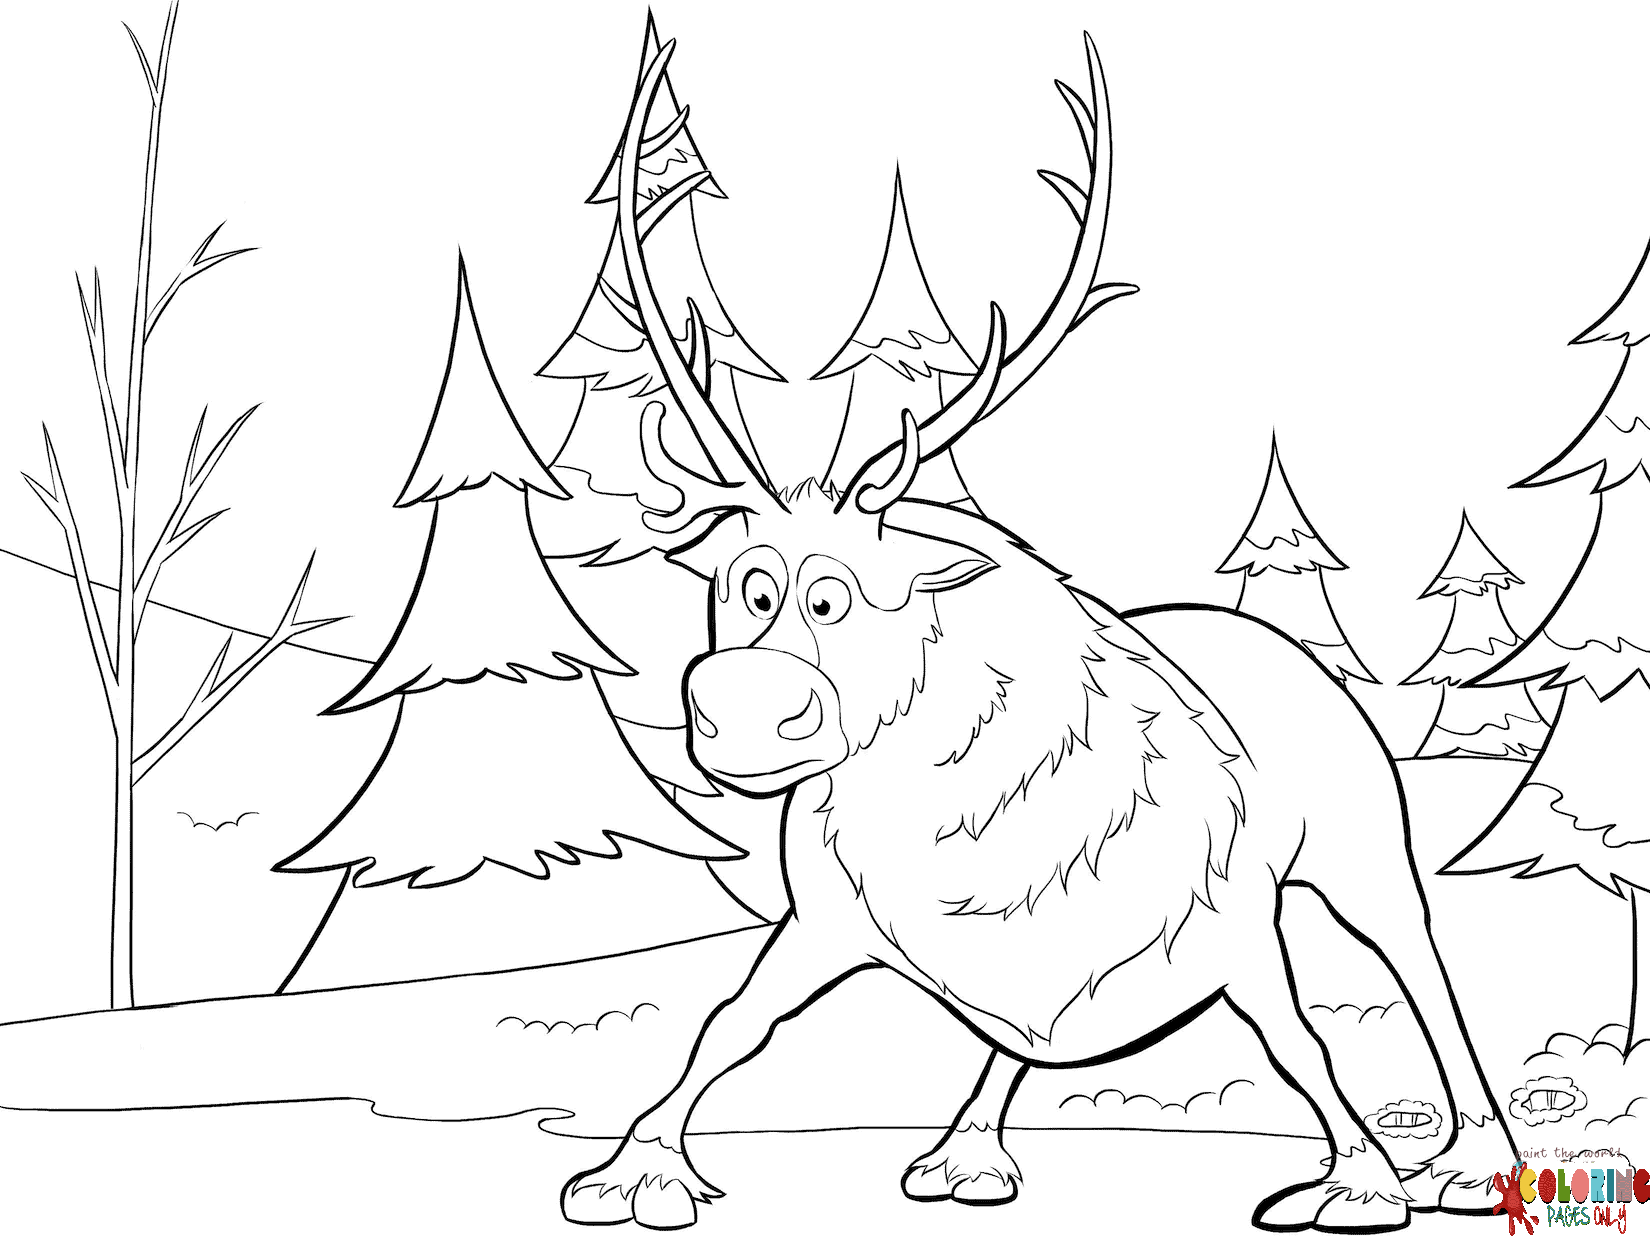 - Shy Sven Frozen Coloring Page - Free Coloring Pages Online